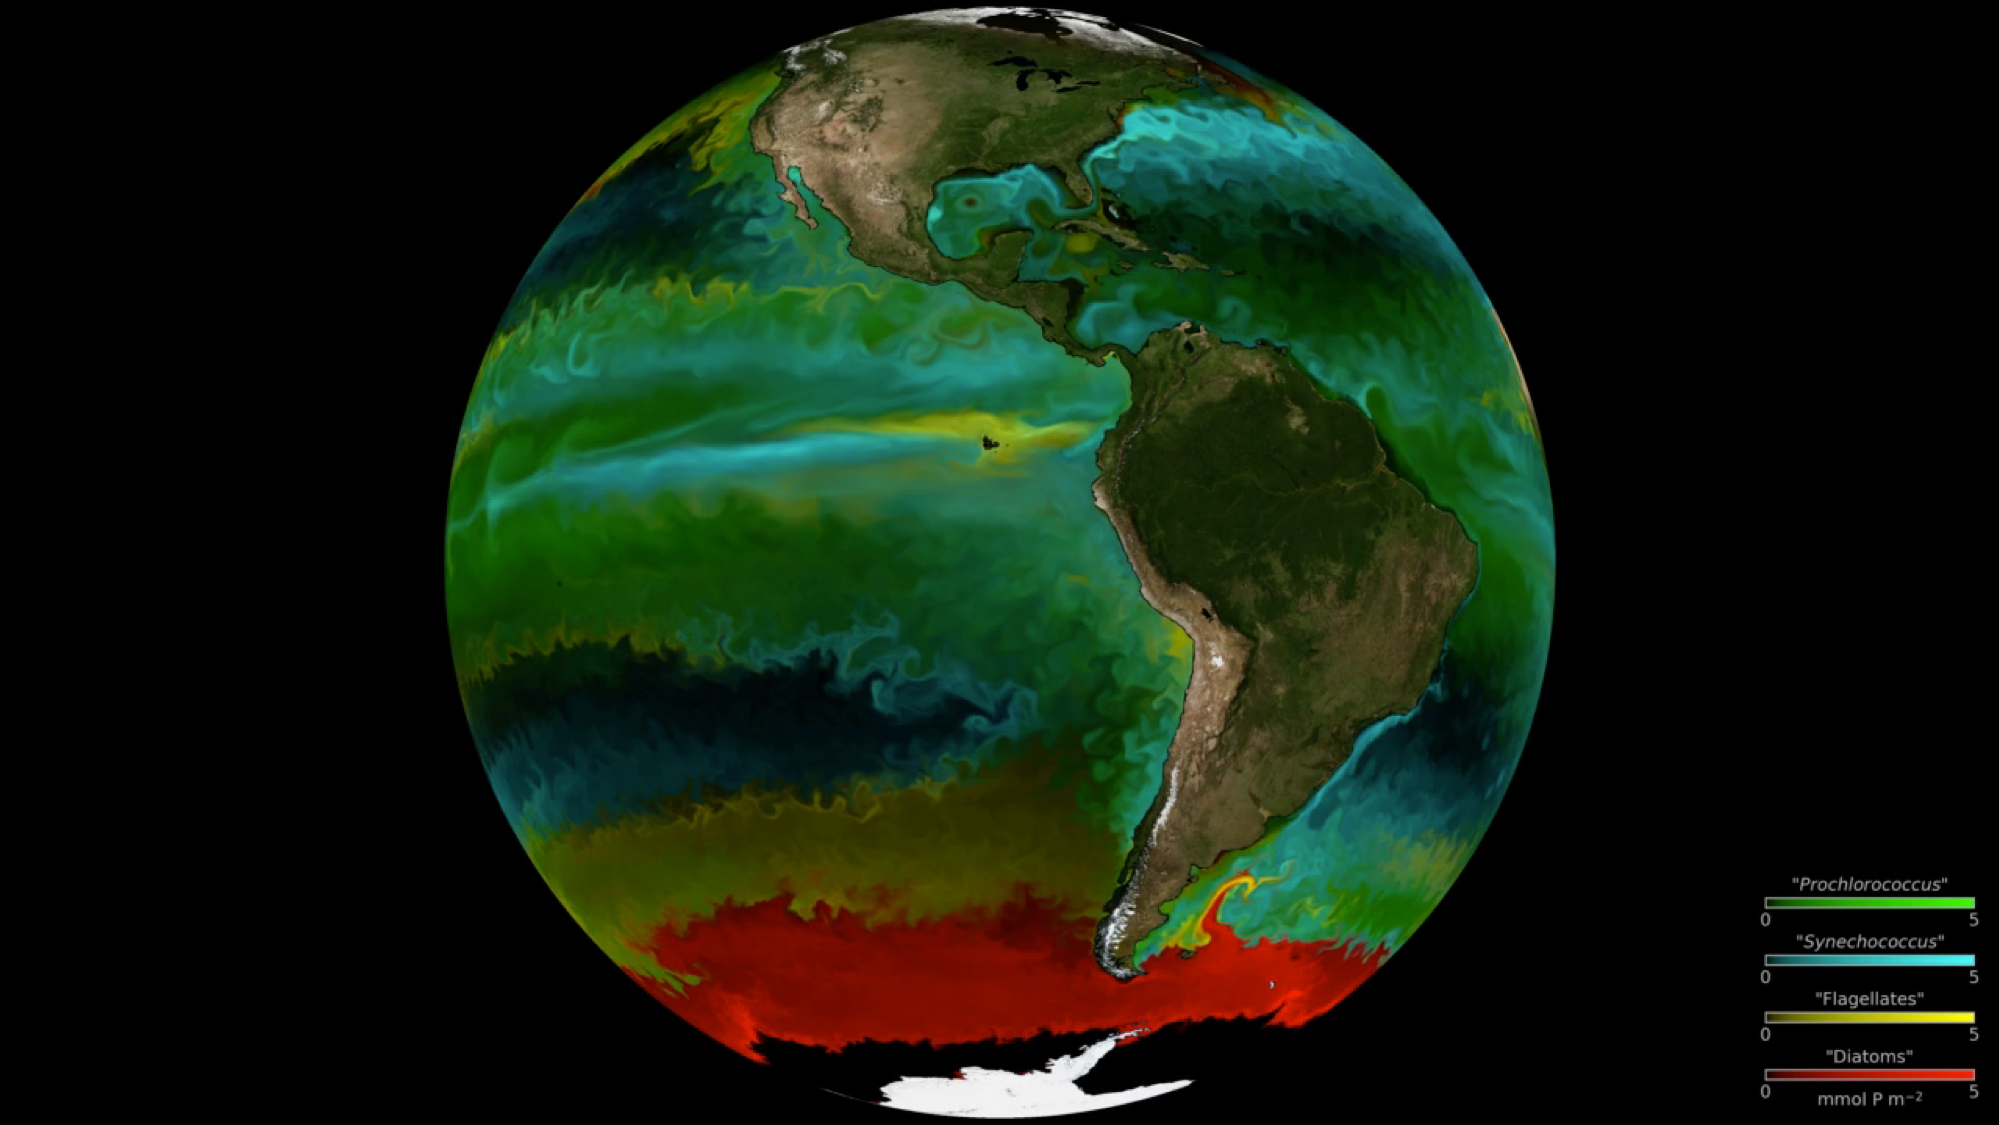 Understanding the location and traits of phytoplankton is key to discovering their roles in the ocean ecosystem. The colors on this map represent types of phytoplankton modeled by a high-resolution ocean and ecosystem model.